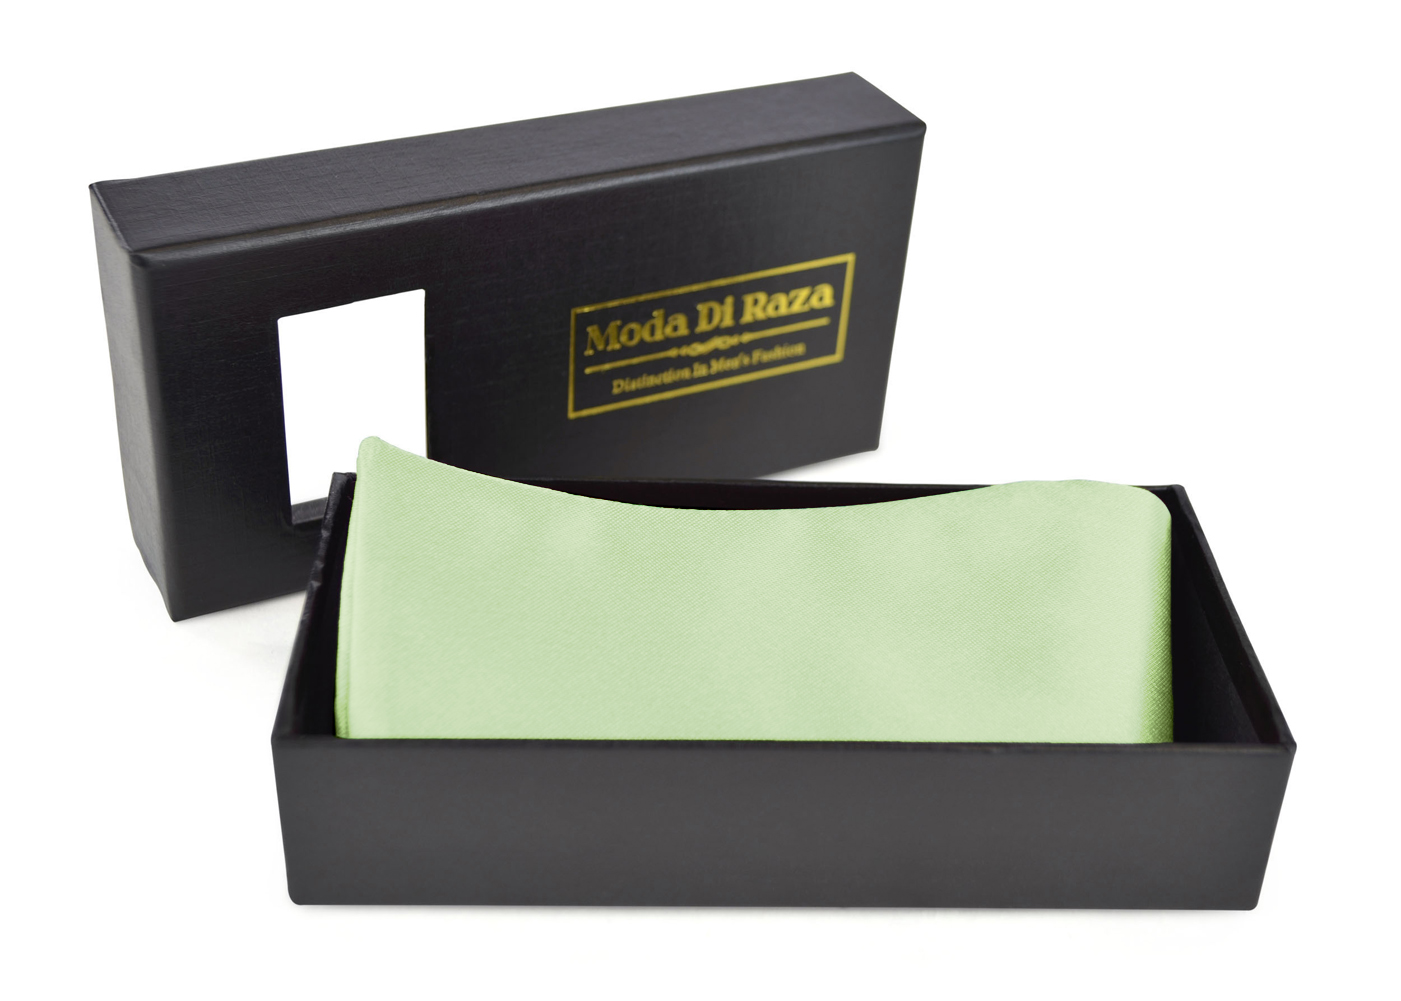 Bow Ties For Men's Adjustable Self Tied Gift Box Moda Di Raza - Olive Green